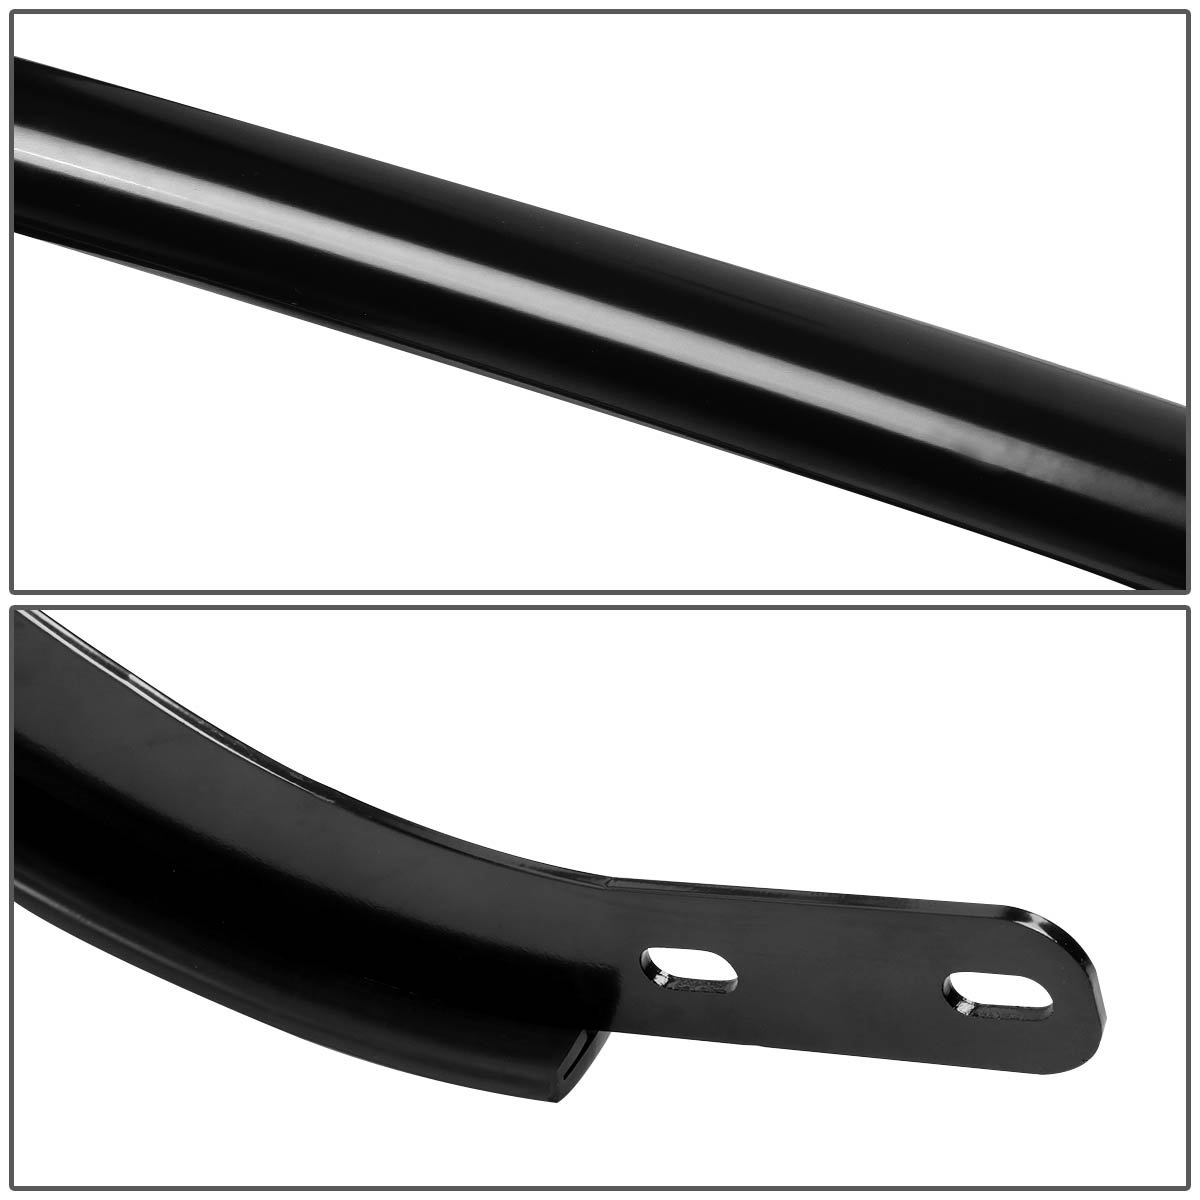 For Nissan Rogue Stainless Steel Double Bar Rear Bumper Protector Guard Black